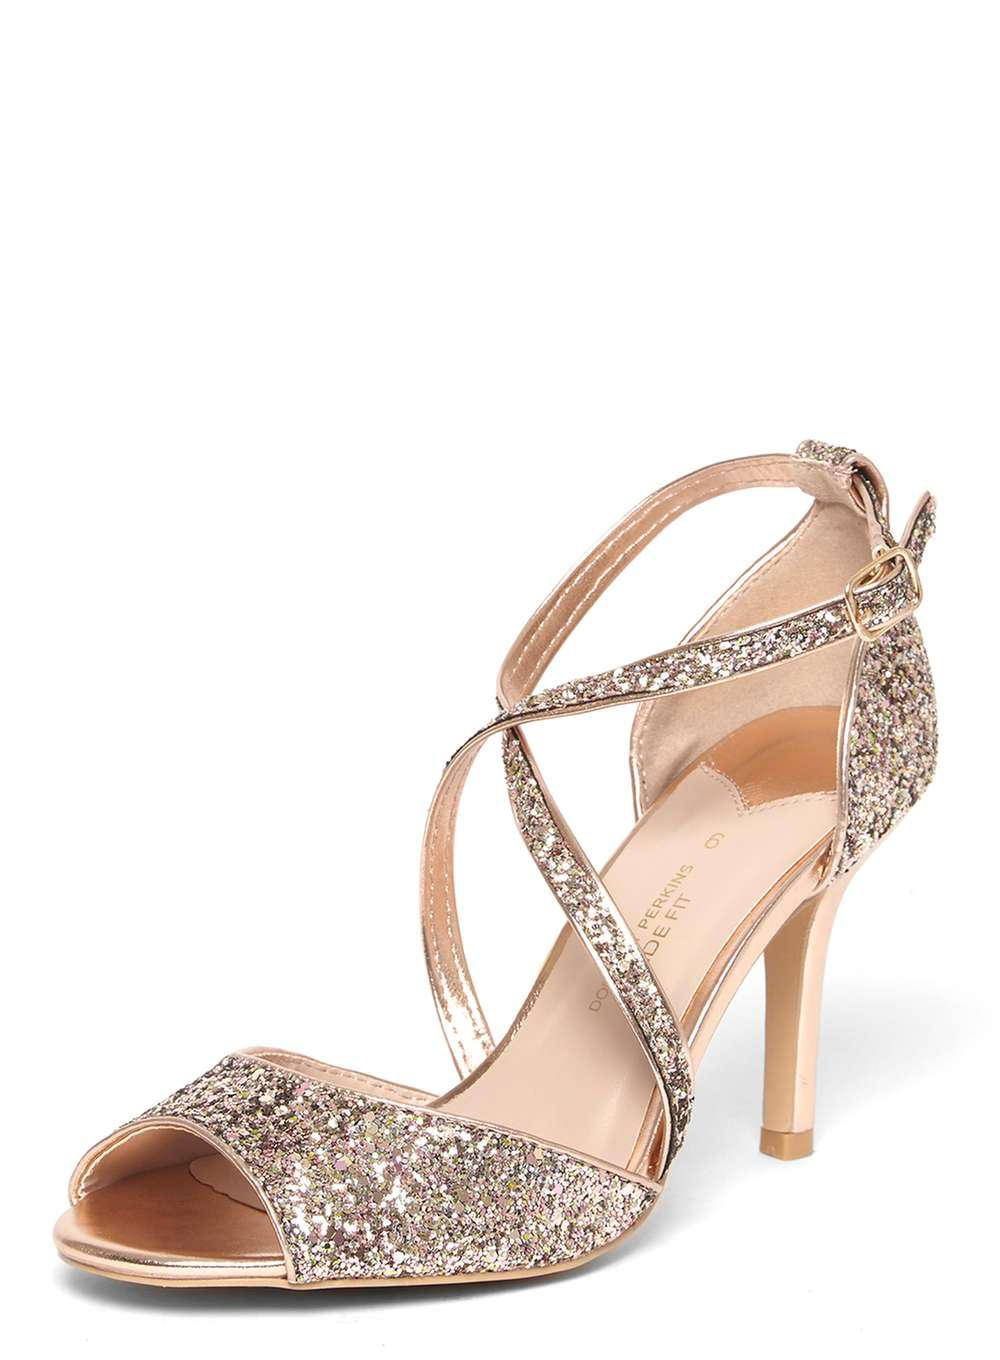 bef1a23ff42 Dorothy Perkins Rose Gold Wide Fit  blaire  Sandals in Metallic - Lyst